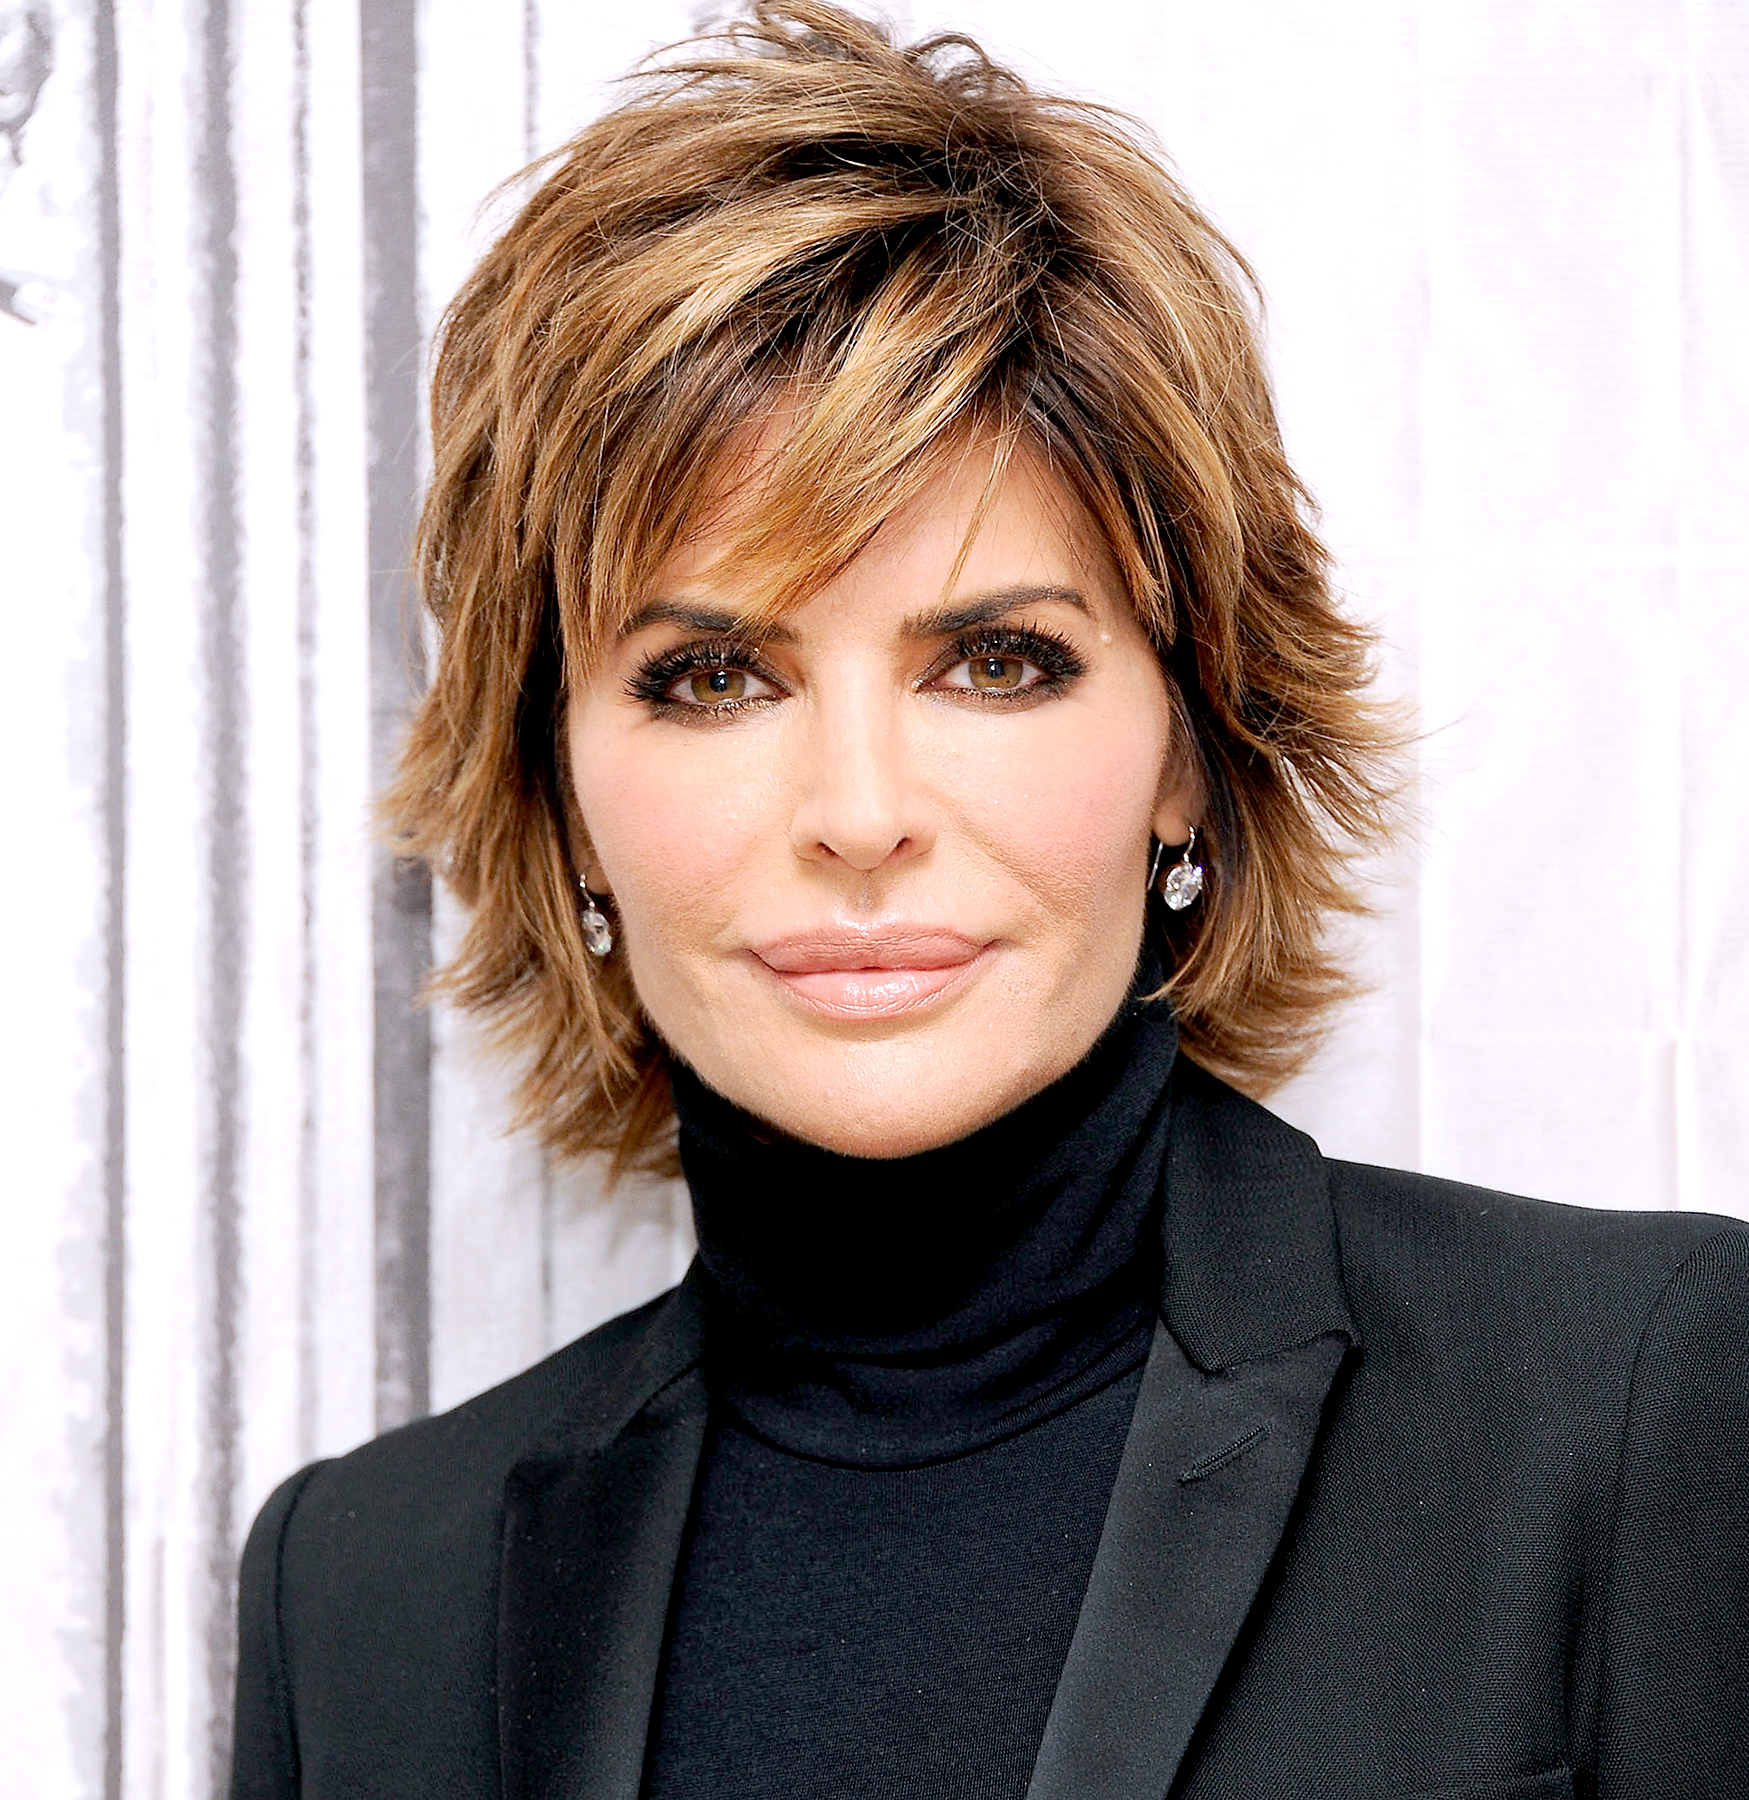 Images Lisa Rinna nudes (18 photos), Sexy, Leaked, Feet, cameltoe 2015